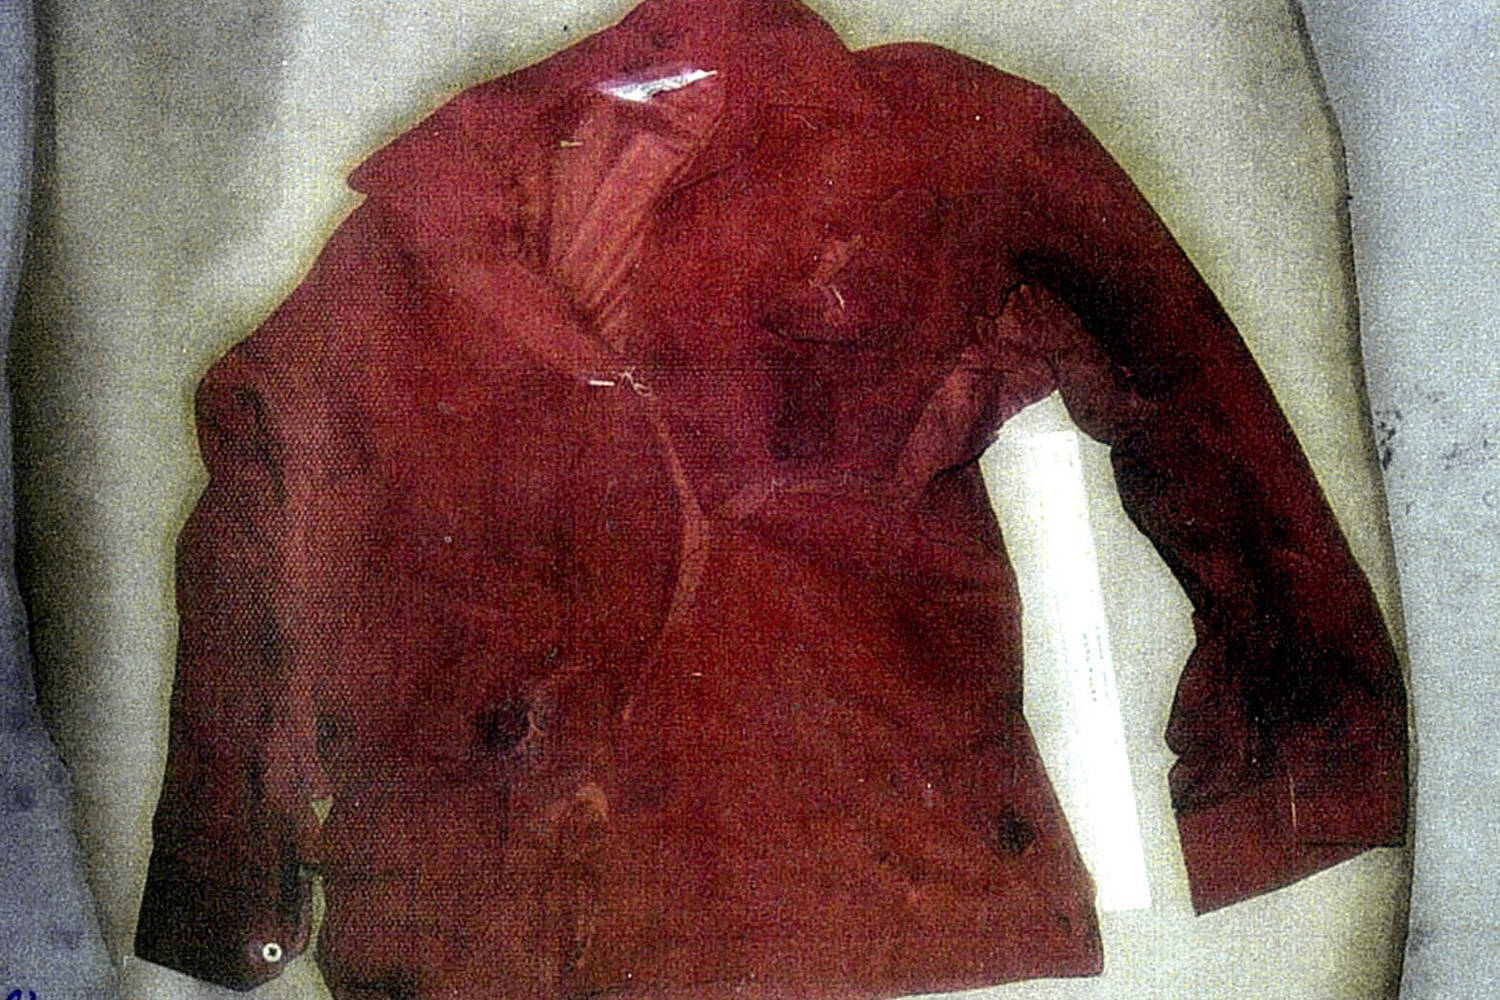 Police evidence photo of a long-sleeved red shirt. It has been cut open, and there is a bullet hole near the stomach.